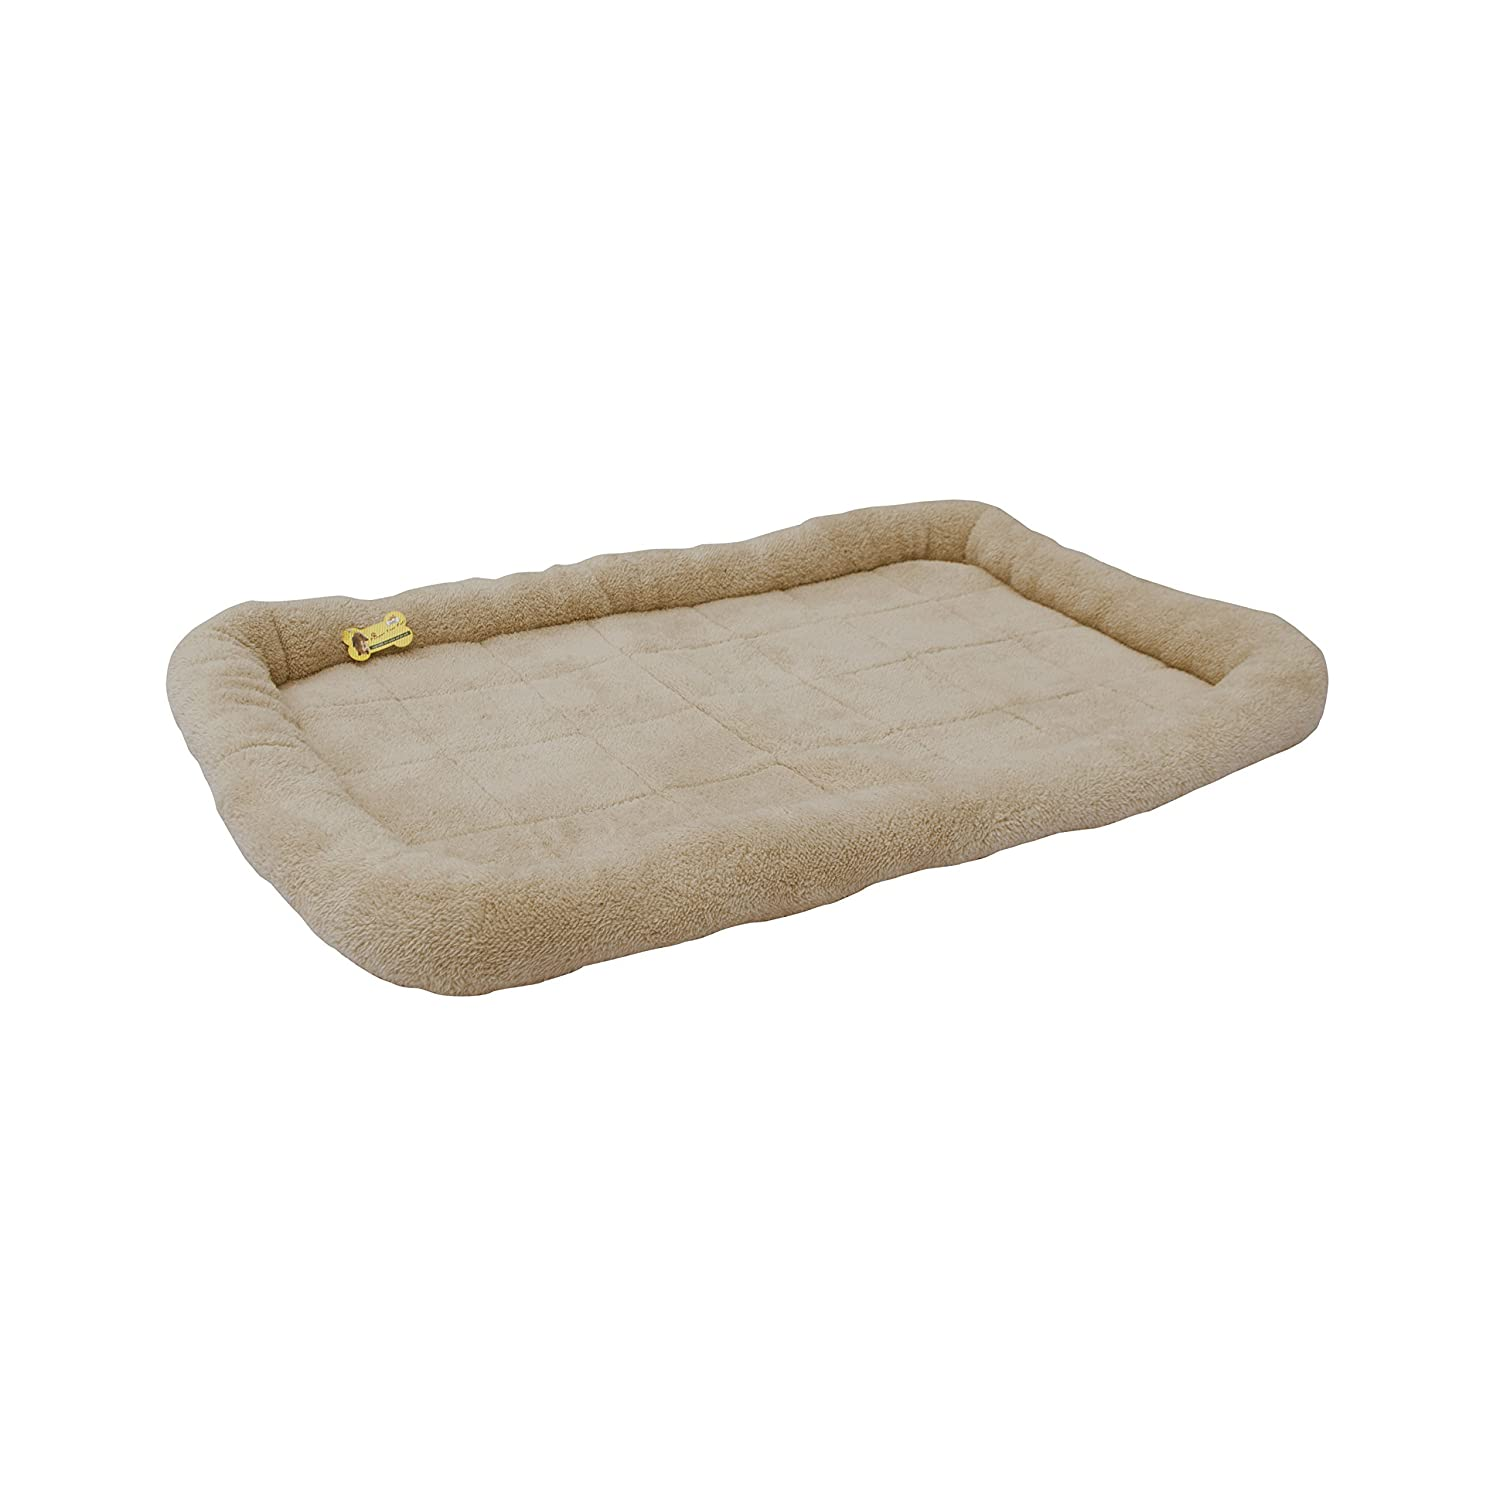 ALEKO PCM06XL Soft Plush Beige Comfy Pet Bed Cushion Mat for Dogs and Cats, XL